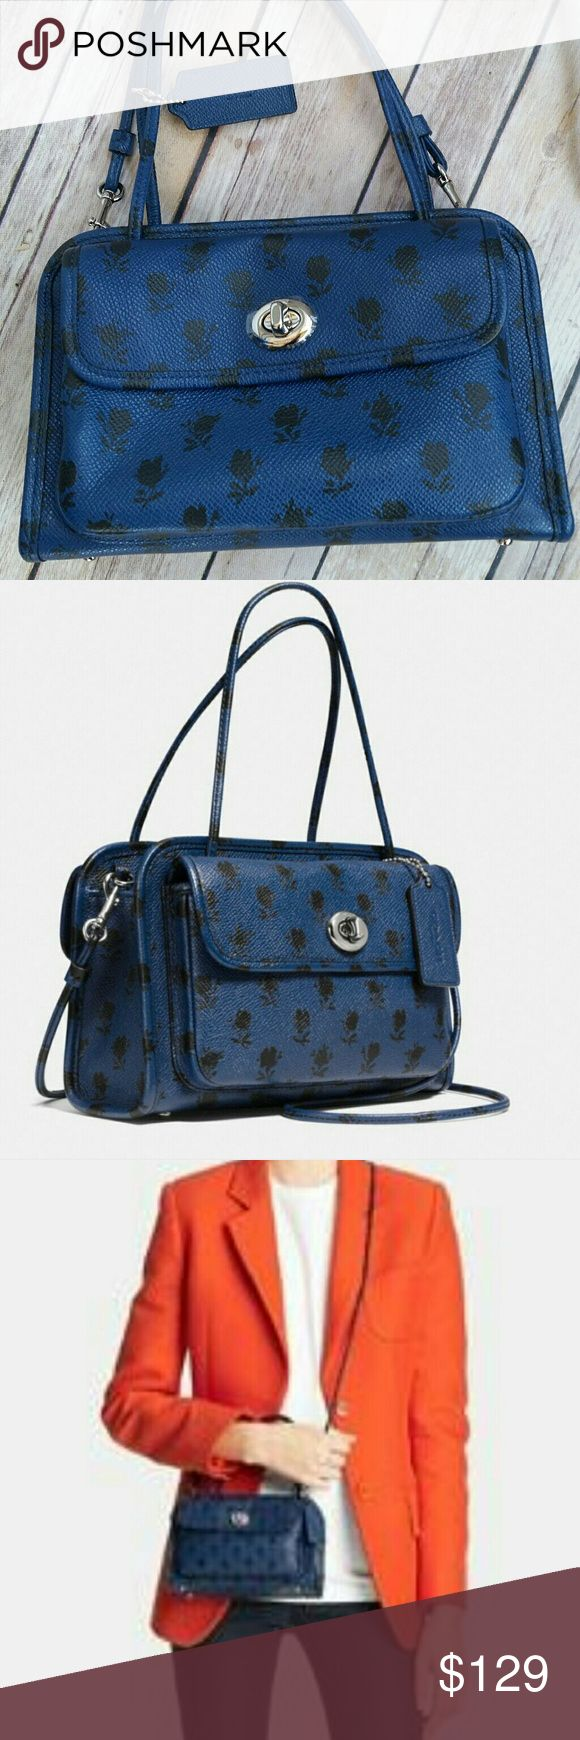 """Coach Cady Crossbody Purse Coach Cady Crossbody Purse in Black and Blue Floral. New without tags. Still has protective film on outer buckle closure hardware as shown.  Detachable crossbody strap. Small and adorable!  Measures approximately 8"""" by 5""""  Slight scuff mark on bottom as shown in last picture. Coach Bags Crossbody Bags"""